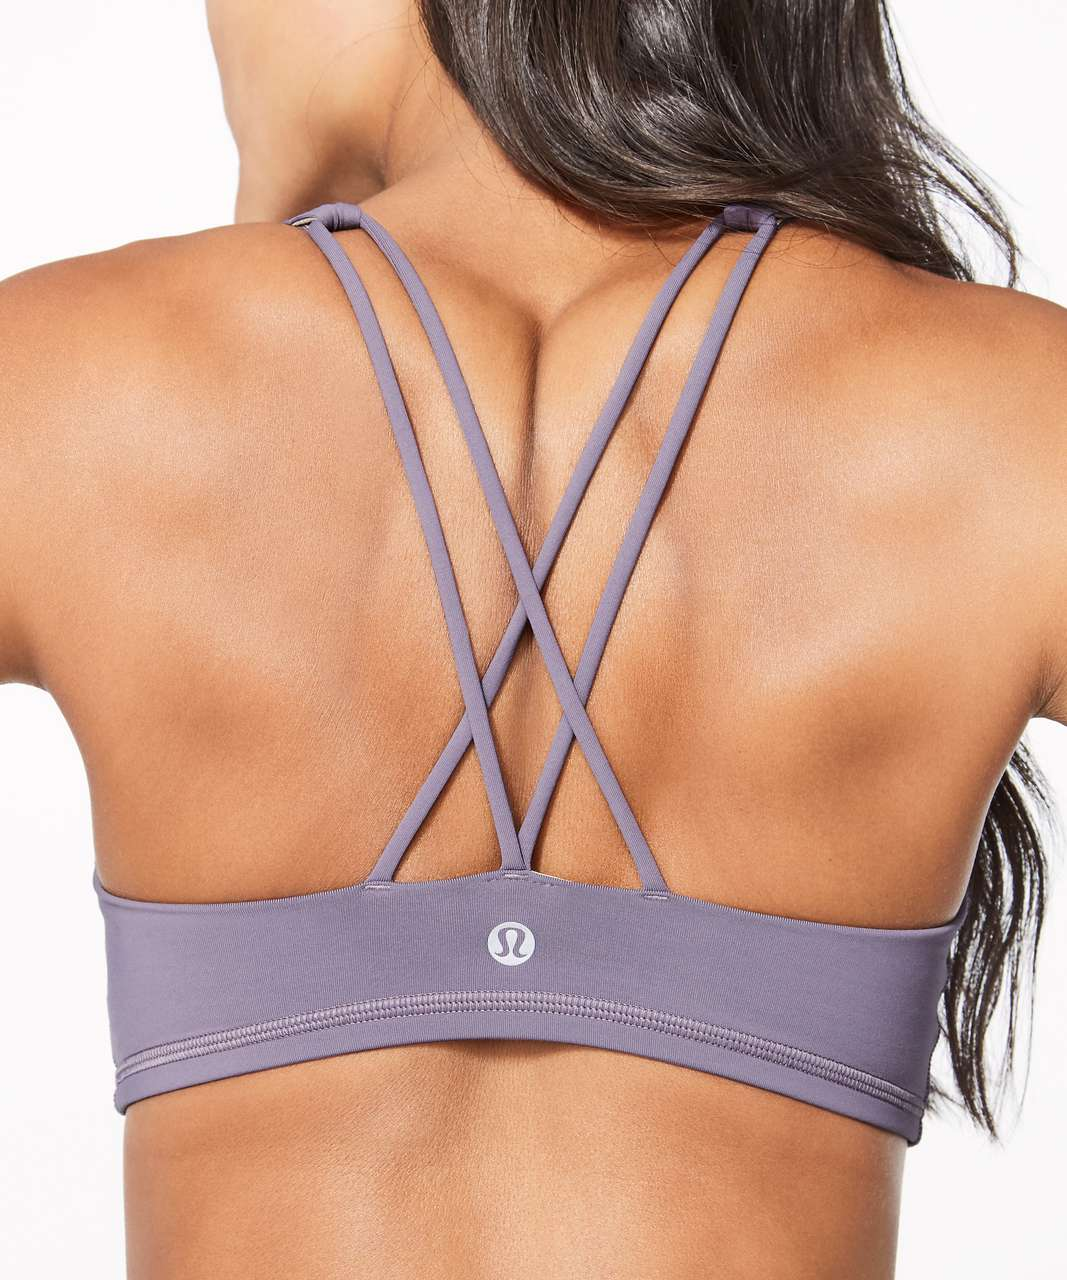 Lululemon Free To Be Bra - Dusky Lavender